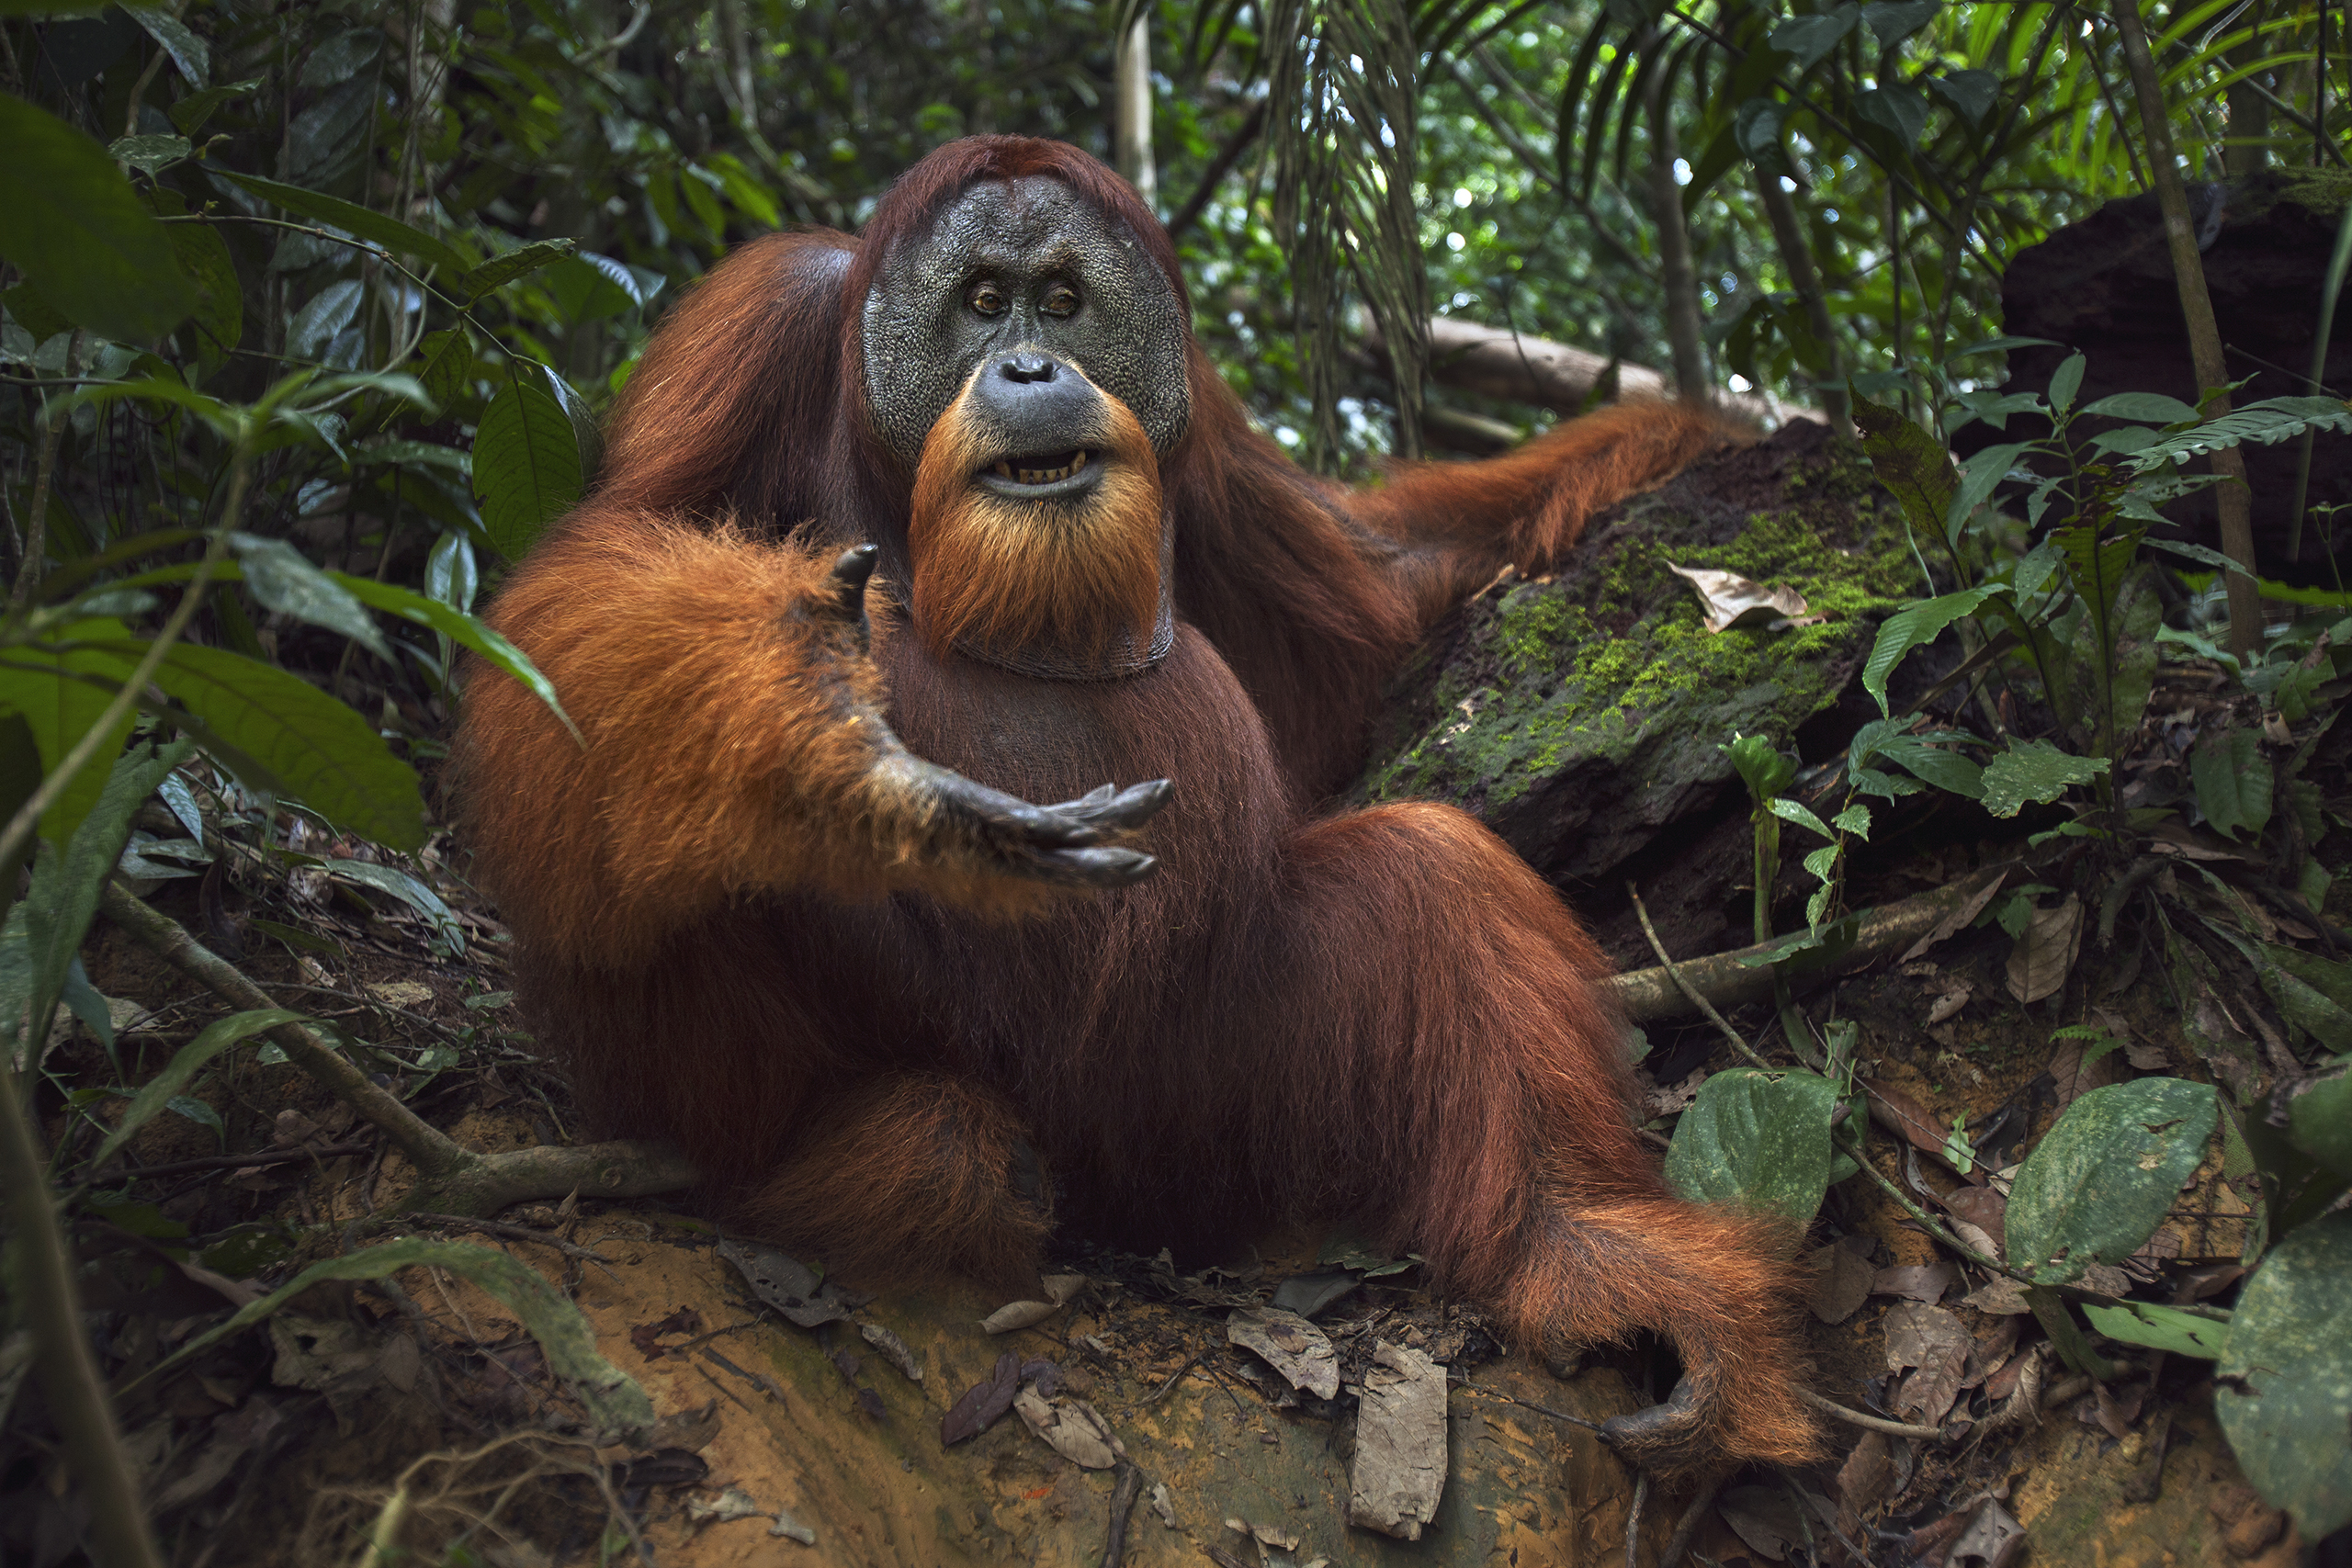 Sumatran Orangutan, Gunung Leuser National Park, Indonesia. The approximately 7,300 remaining Sumatran orangutans live almost entirely in the treetops of tropical rain forests, only rarely traveling on the ground. As these forests are converted into oil palm plantations or burned to clear land, the orangutans are forced into an ever smaller livable habitat.